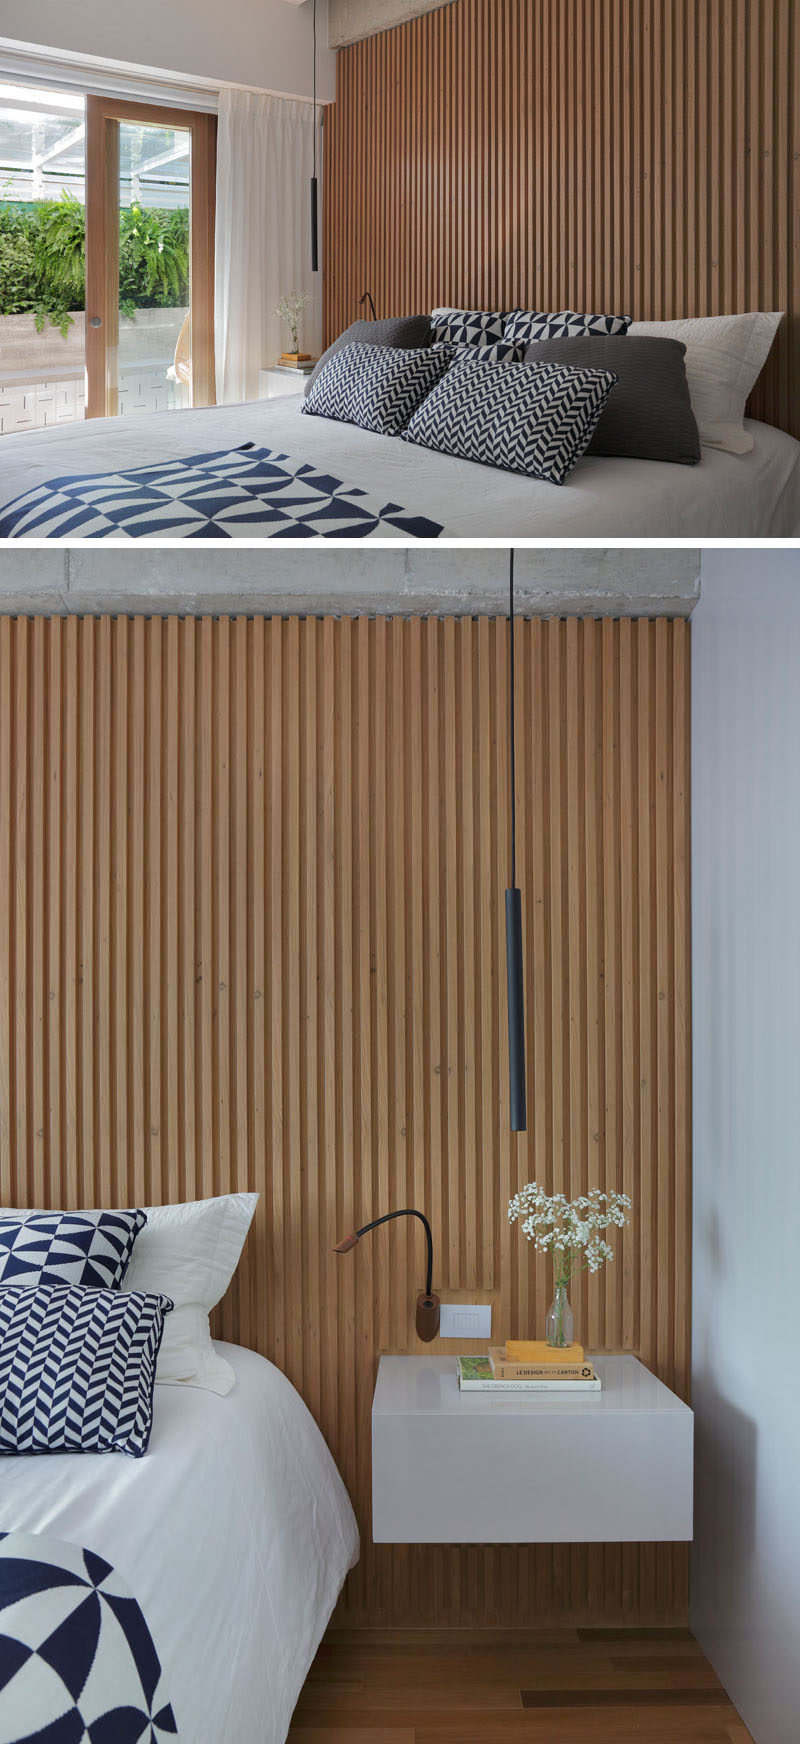 This Brazilian Apartment S Interior Design Features Wood